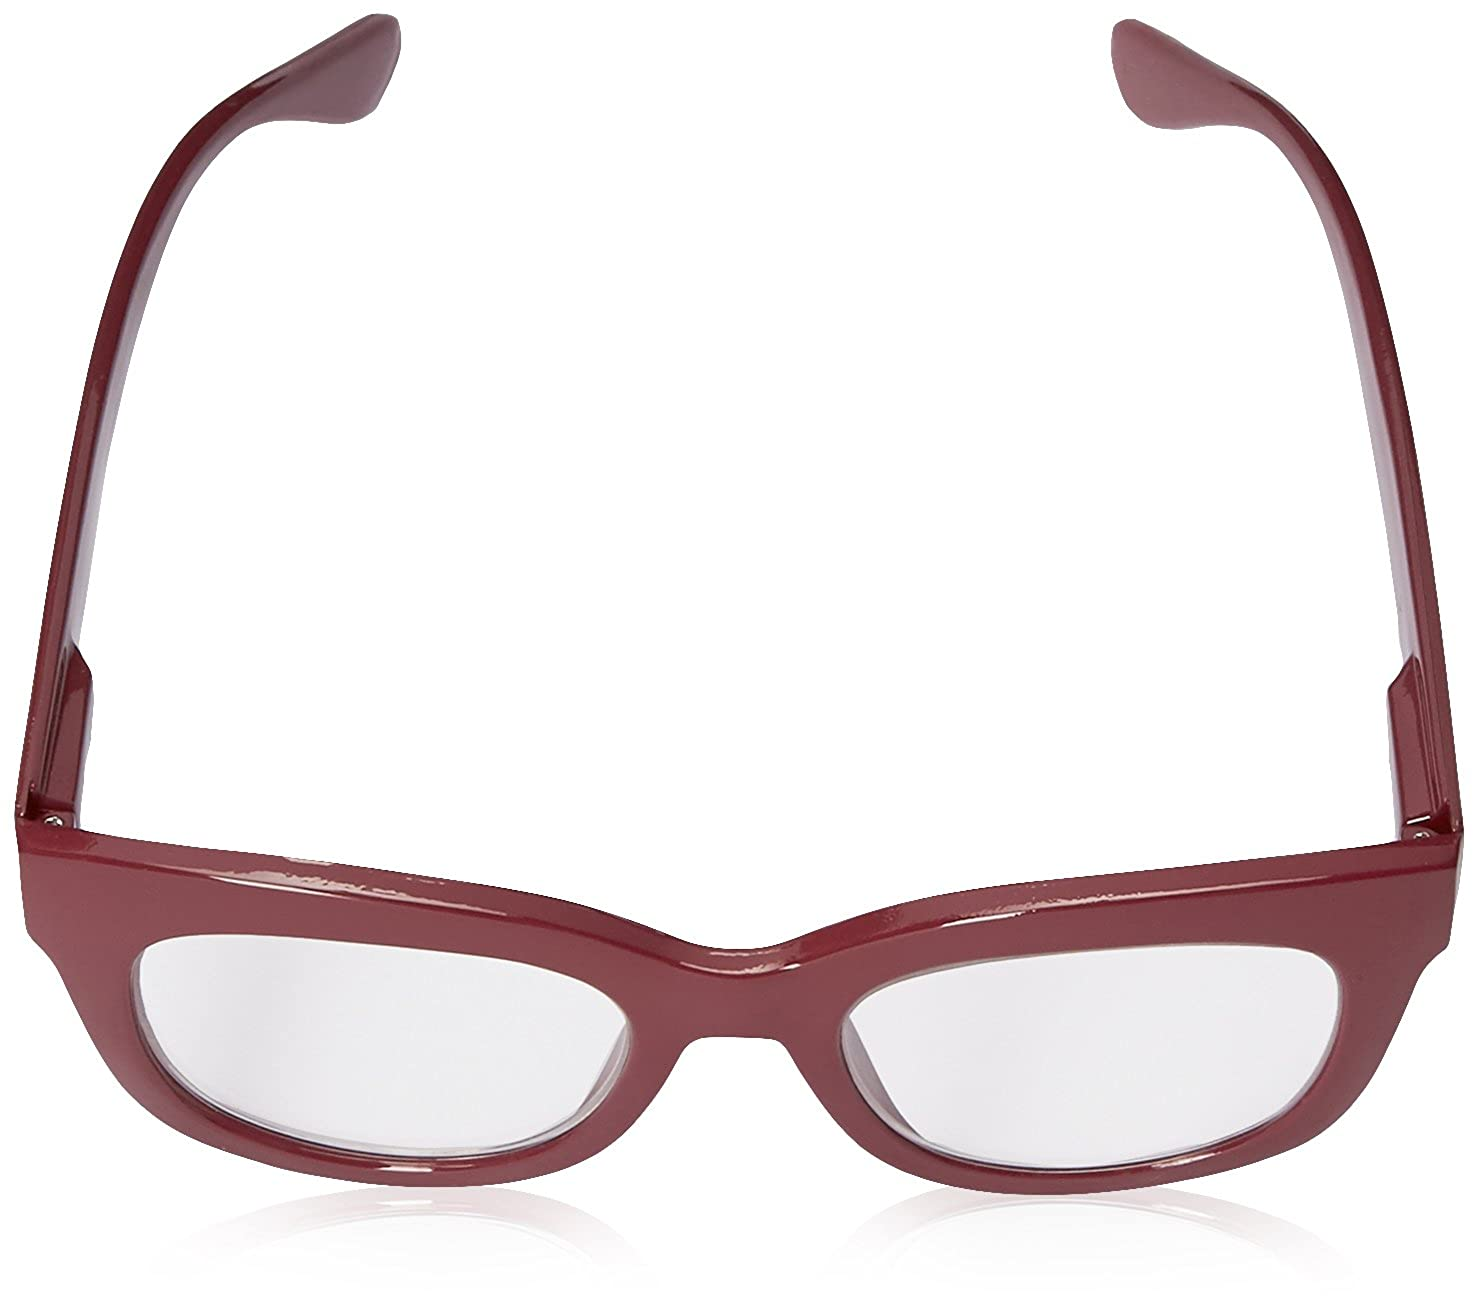 bbf1a5acb64 Peepers Women s Center Stage 2297100 Oval Reading Glasses